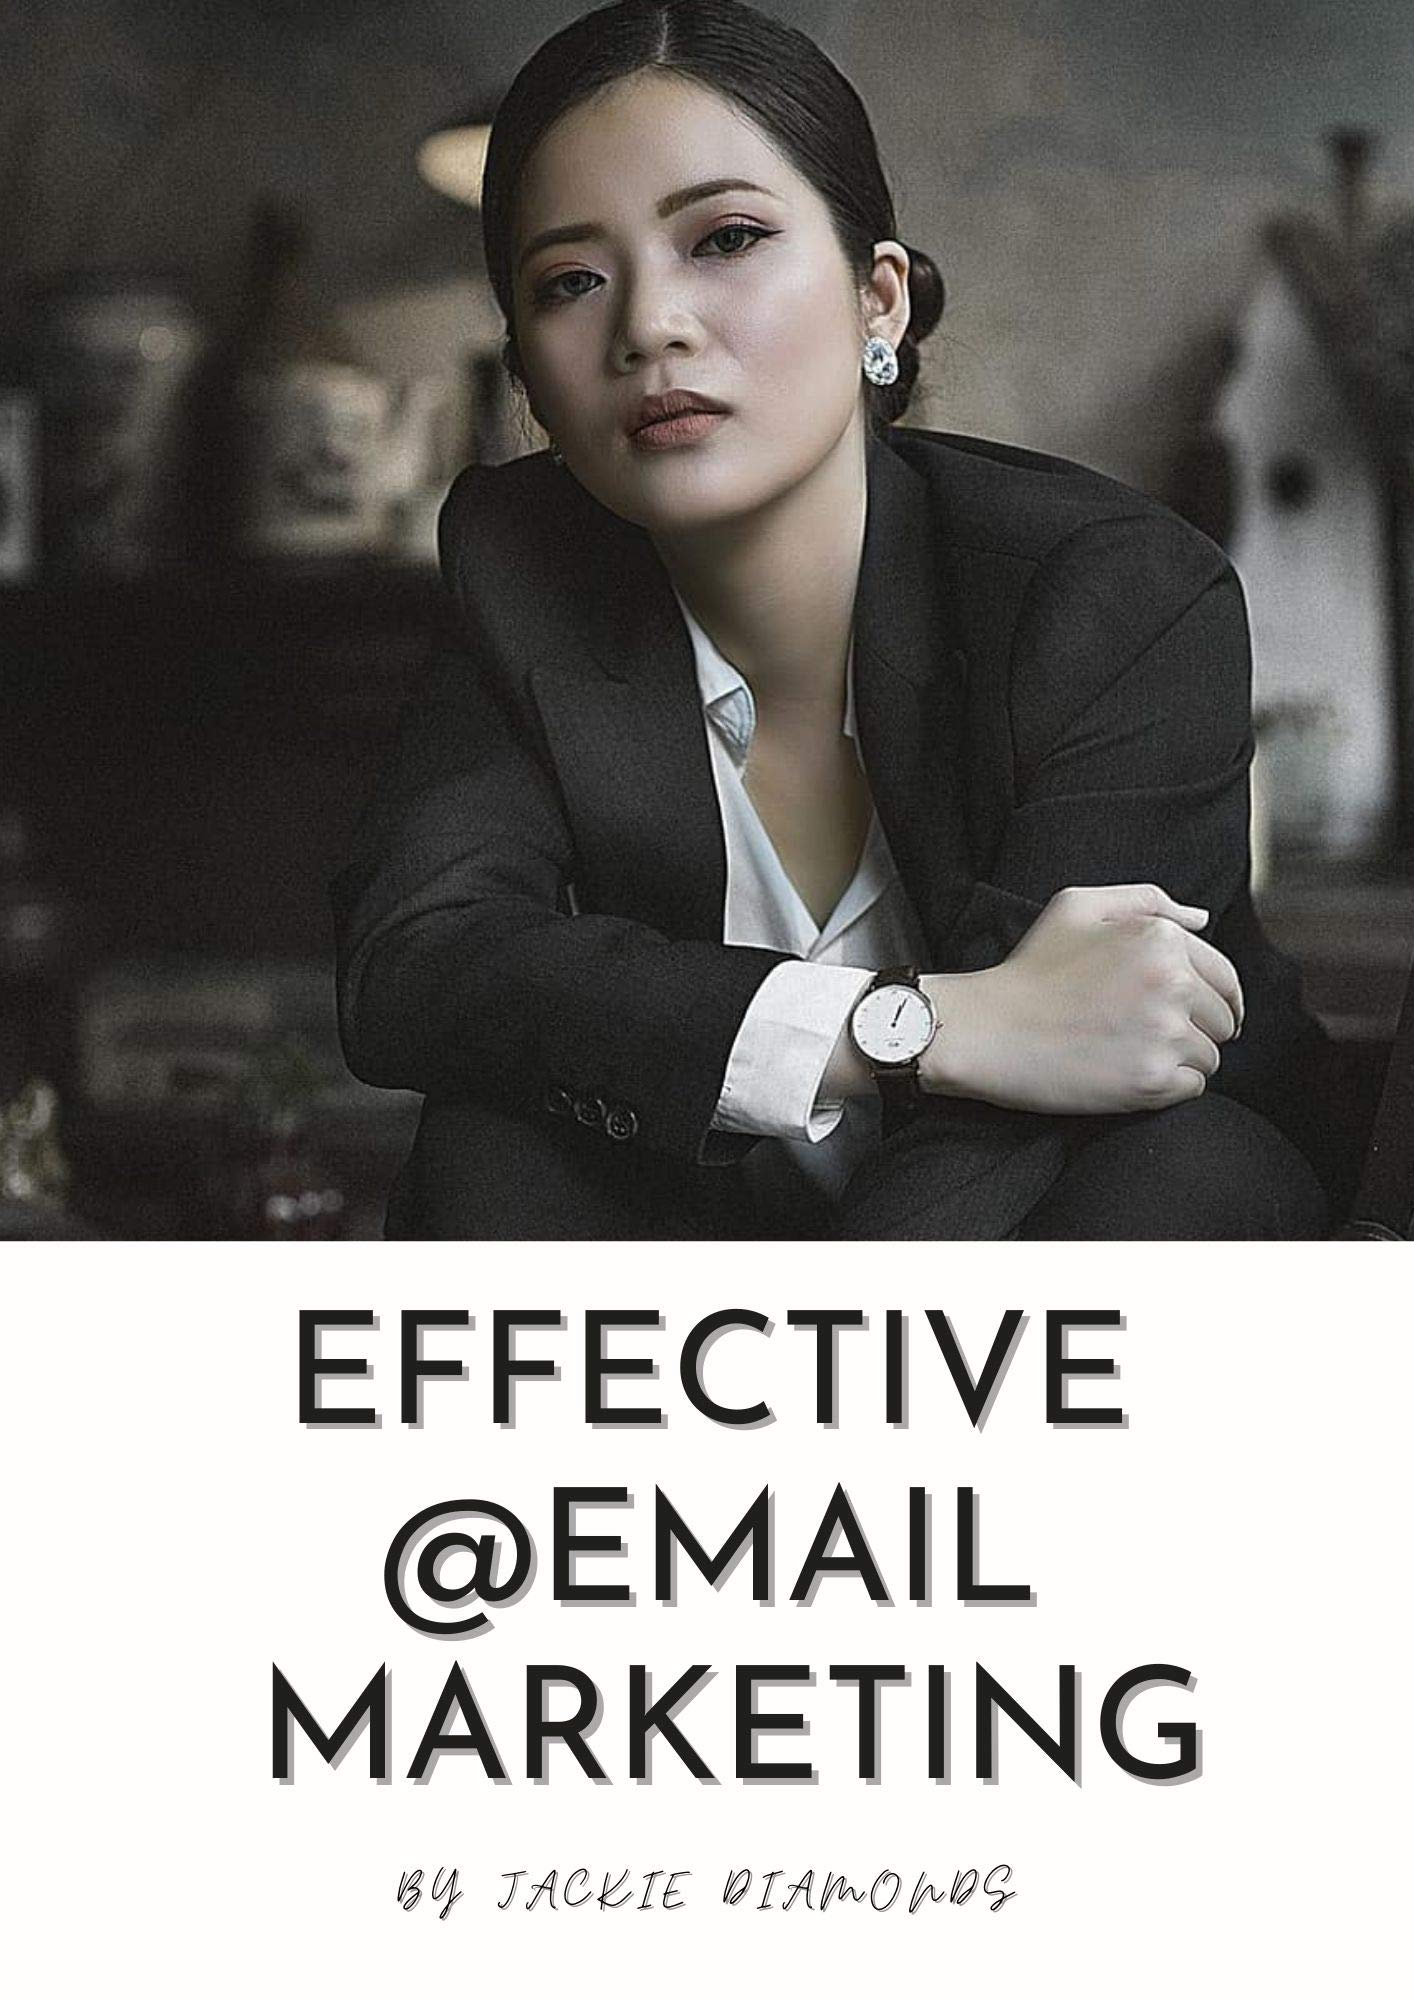 Effective Email Marketing: Simple Guide To Improve Your Business